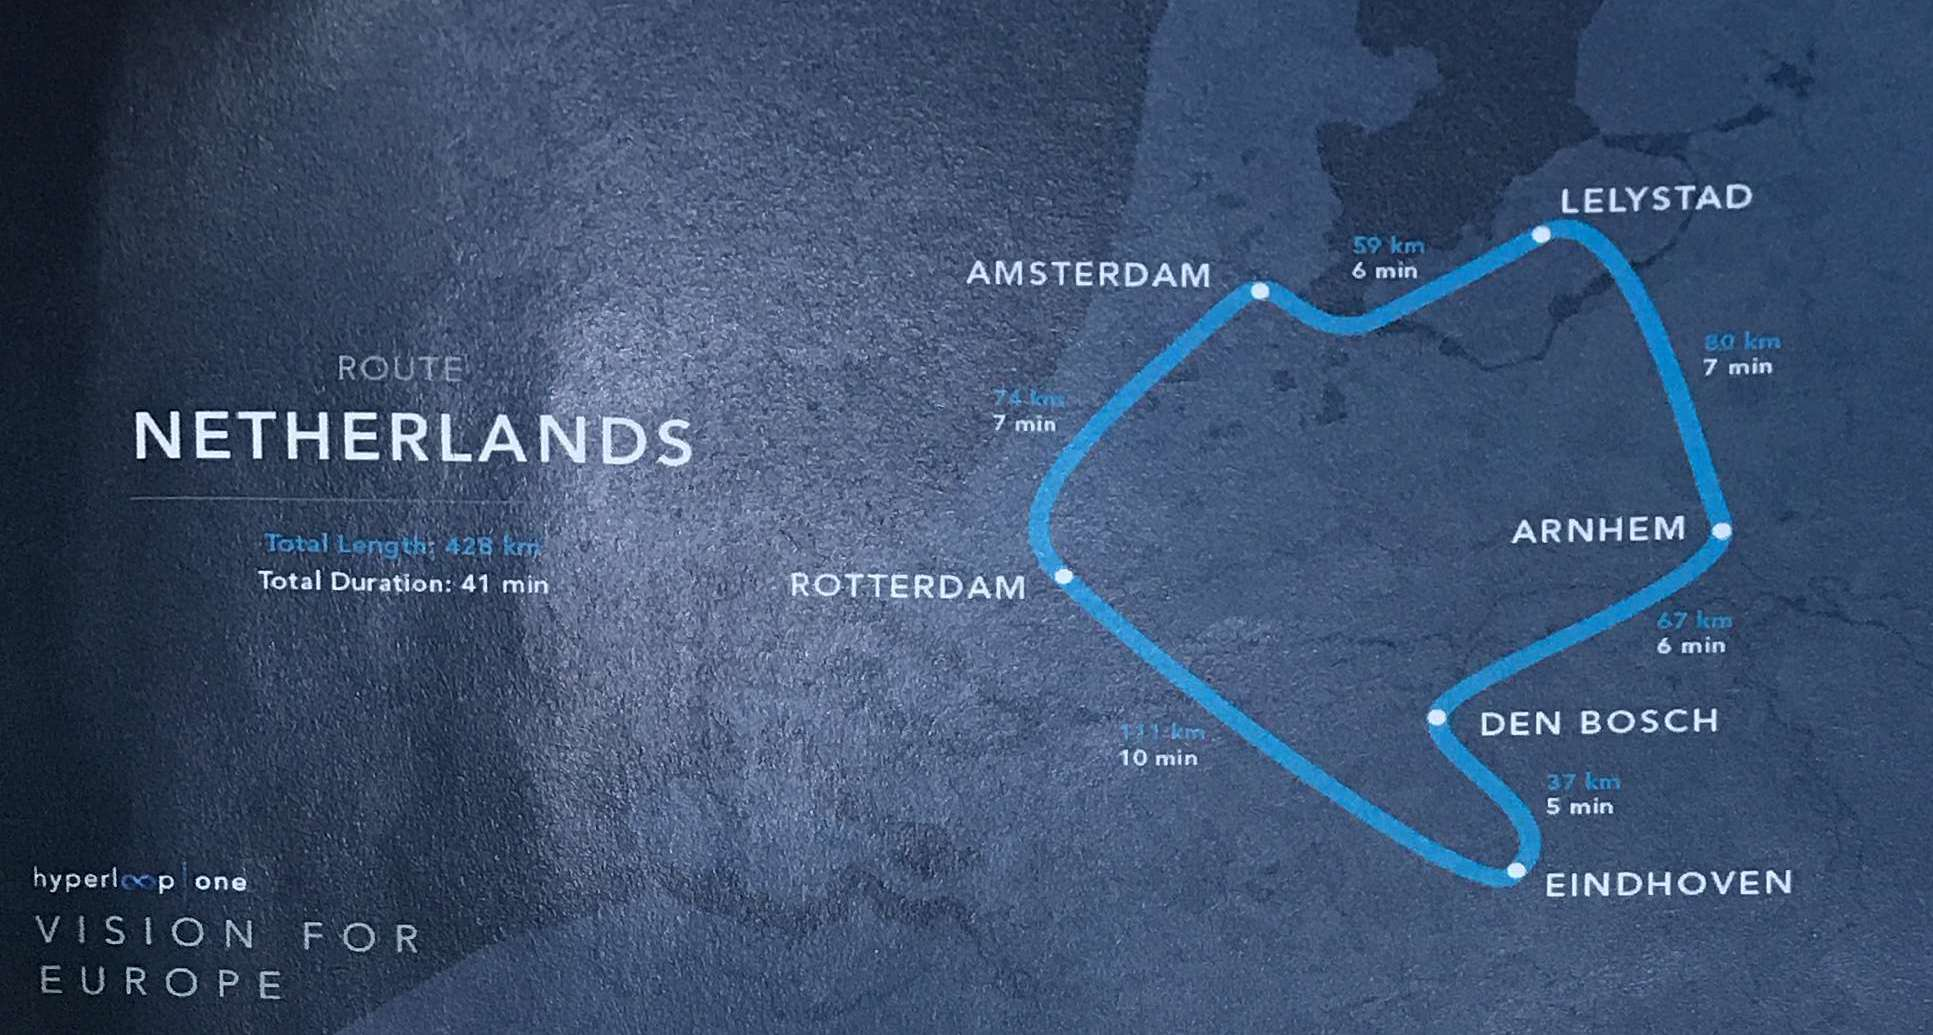 Hyperloop One Netherlands route